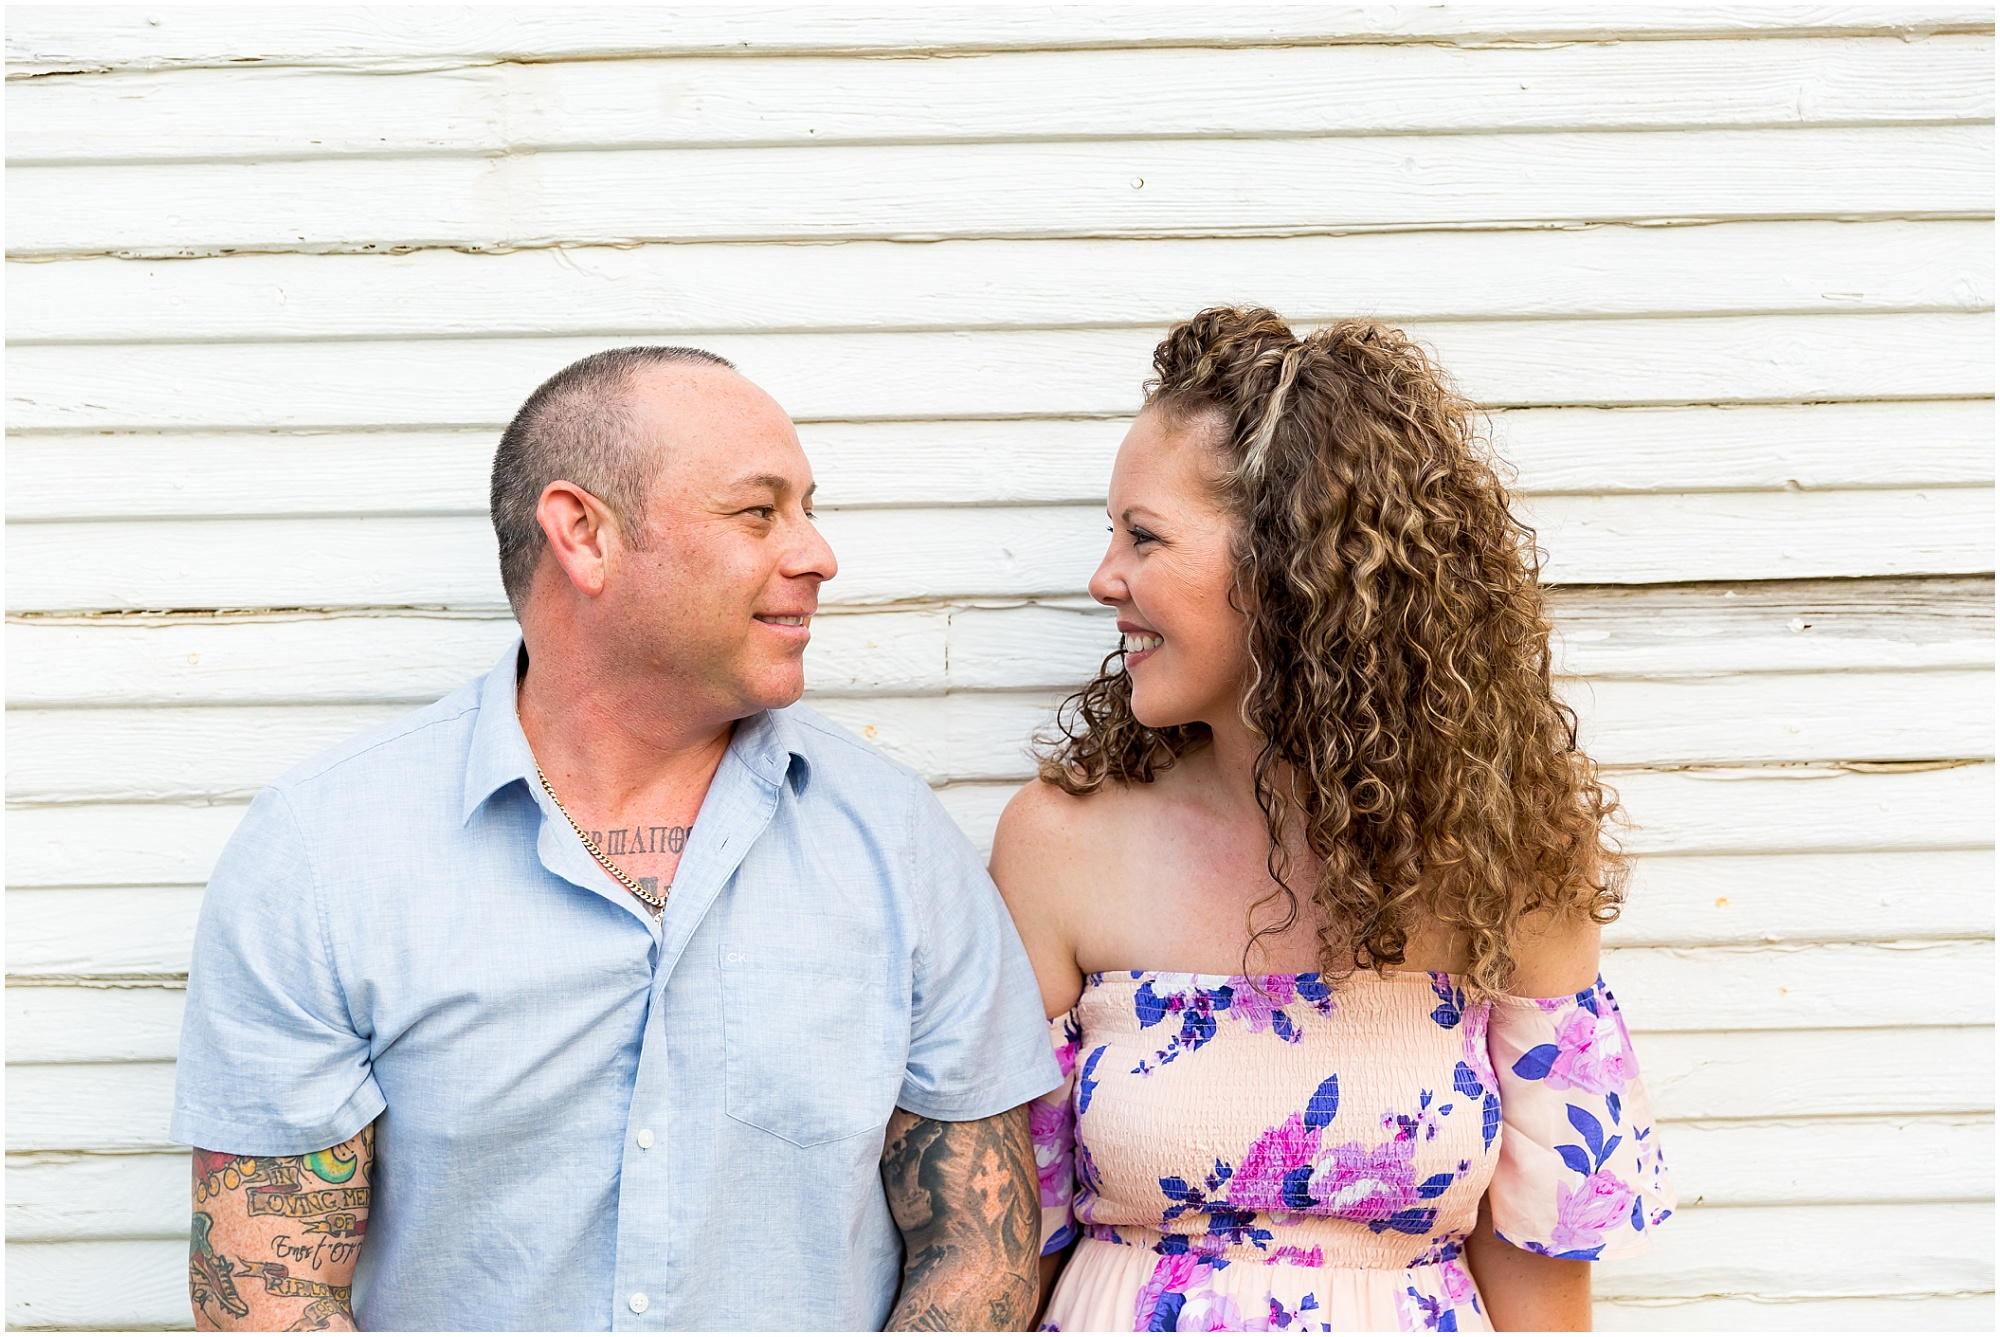 A bride-to-be smiles sits beside her fiance and they turn in towards one another to smile during their engagement session at Glen Rose, Texas - Jason & Melaina Photography - www.jasonandmelaina.com